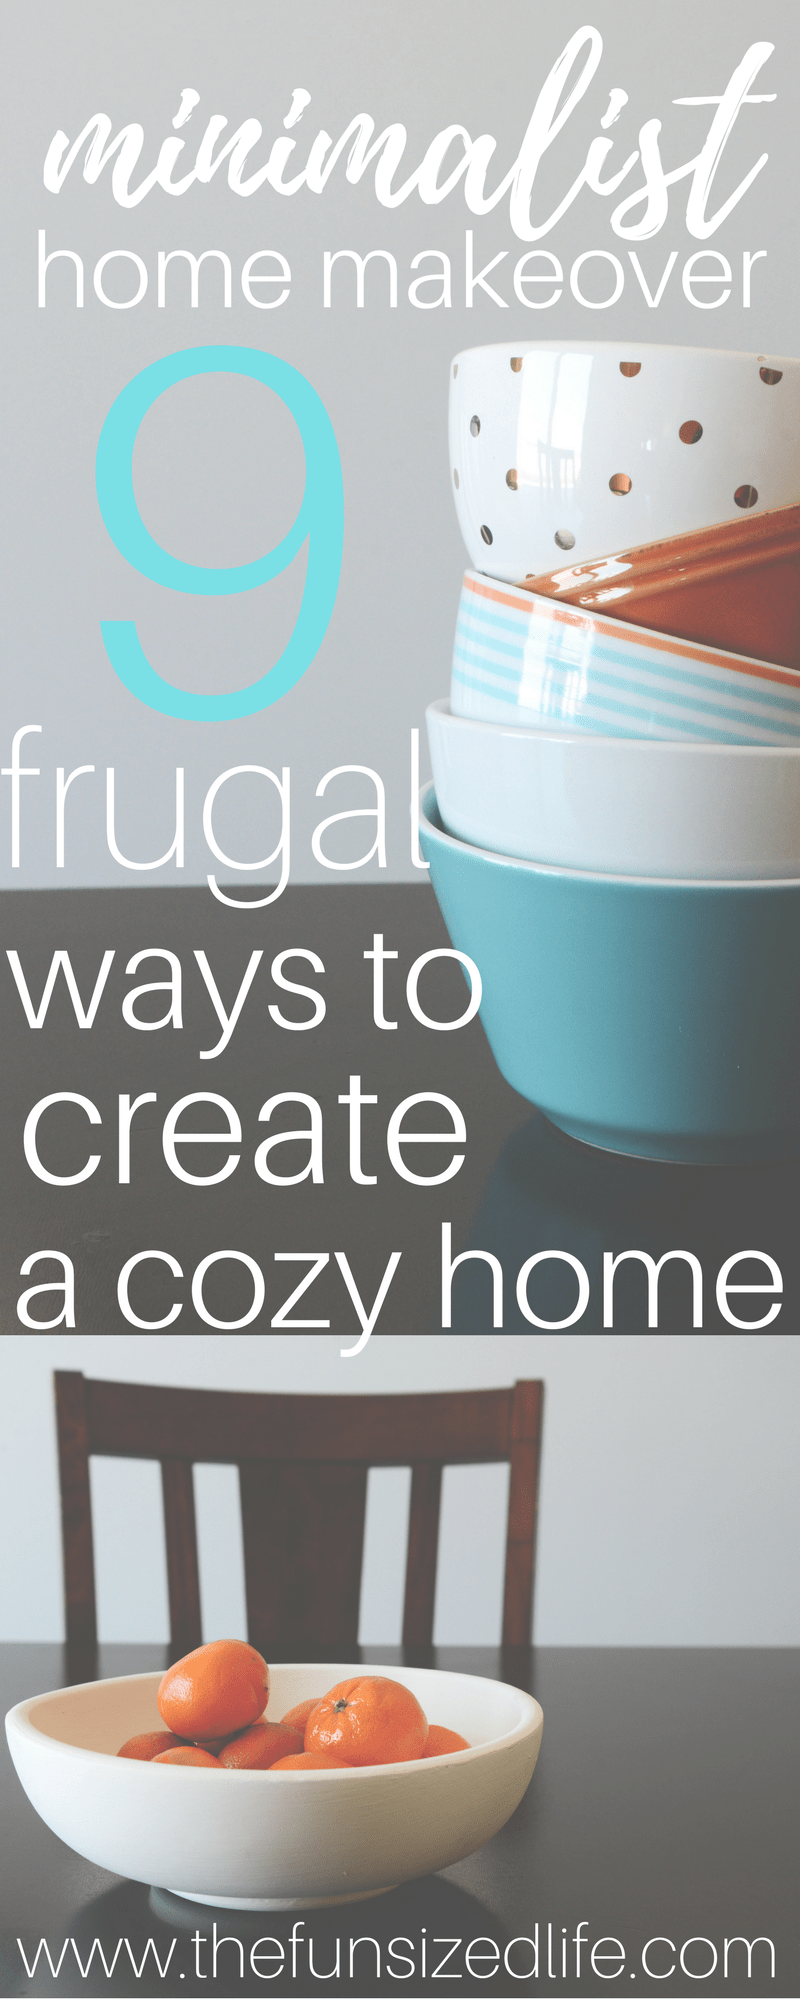 Frugal Ways to Create a Cozy Minimalist Home That's Unique #minimalisthomedecor